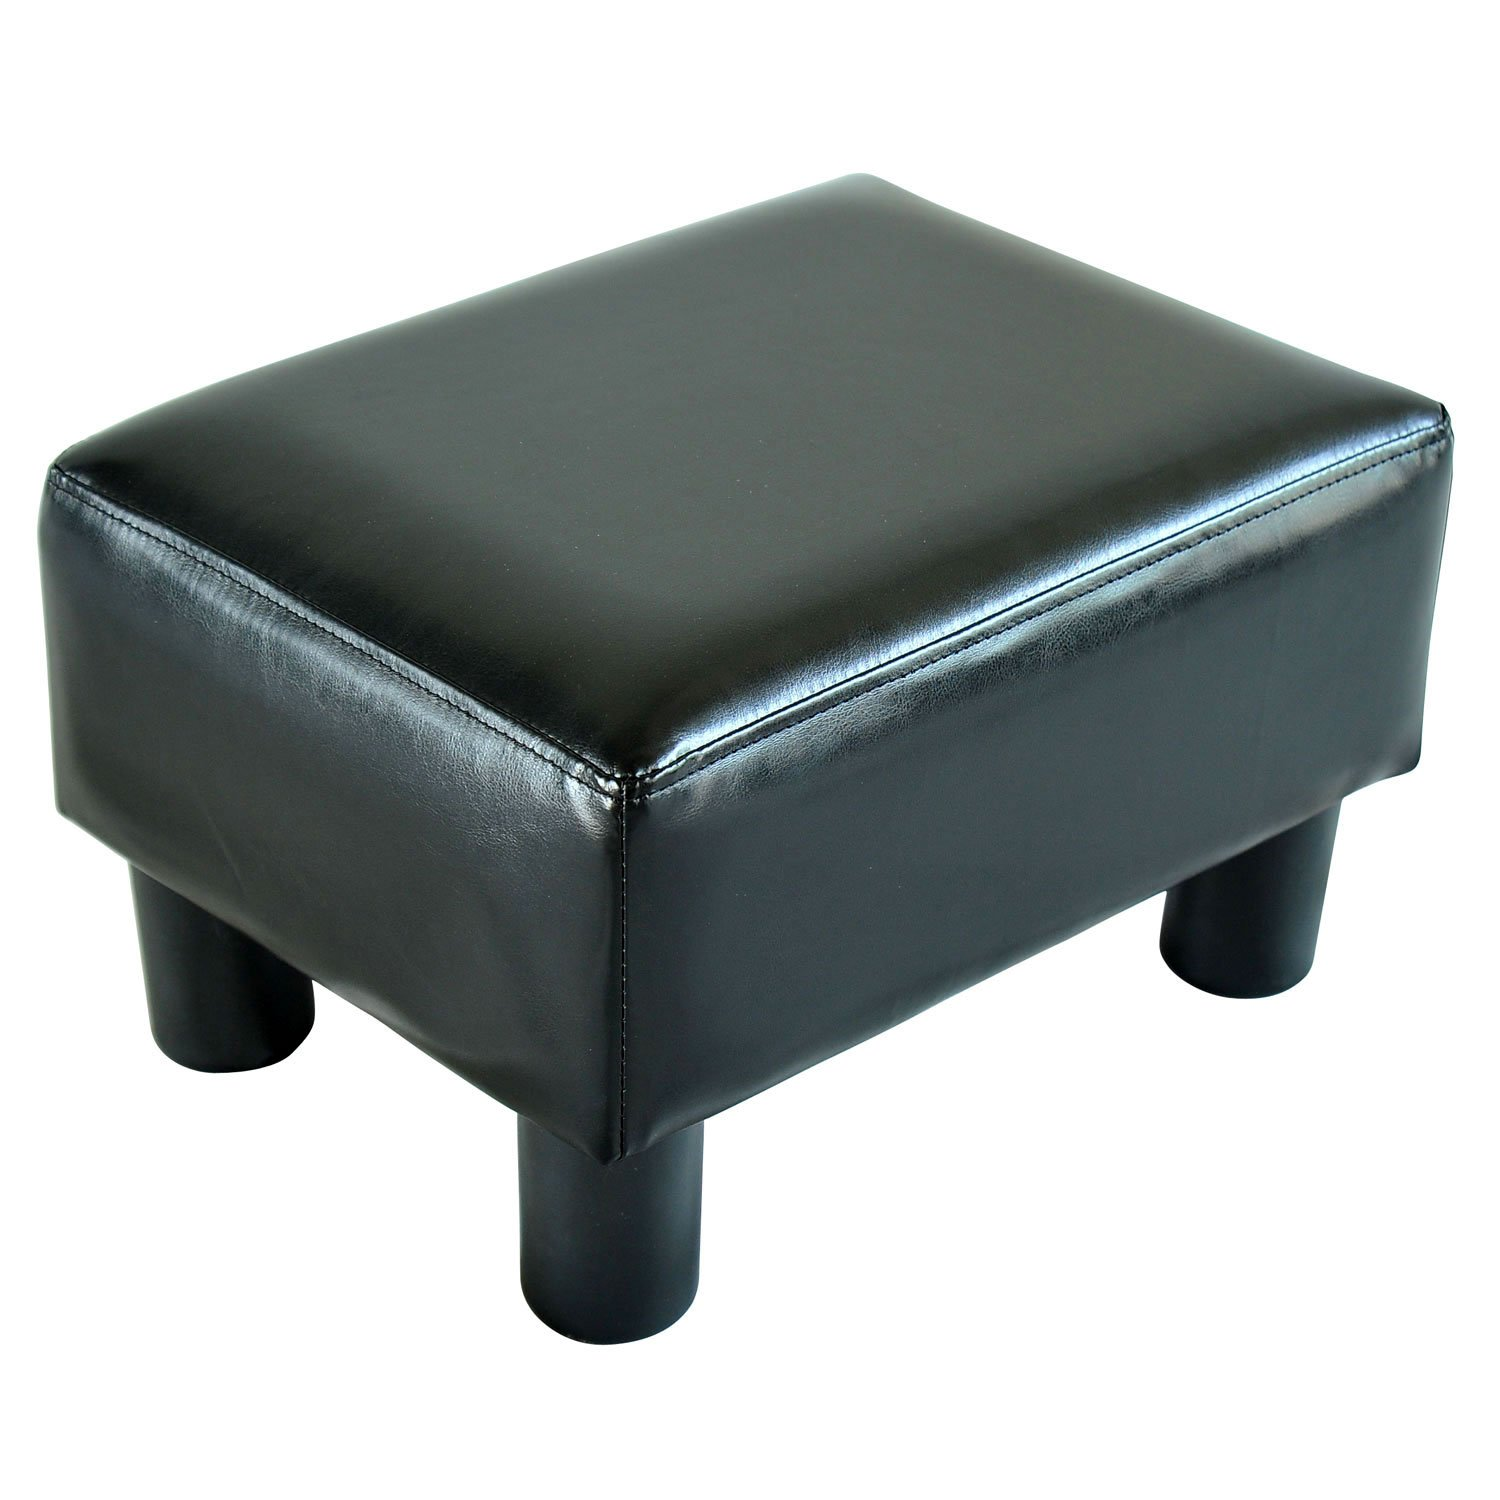 Homcom Modern Small Faux Leather Ottoman/Footrest Stool - Black Aosom Direct 02-0239